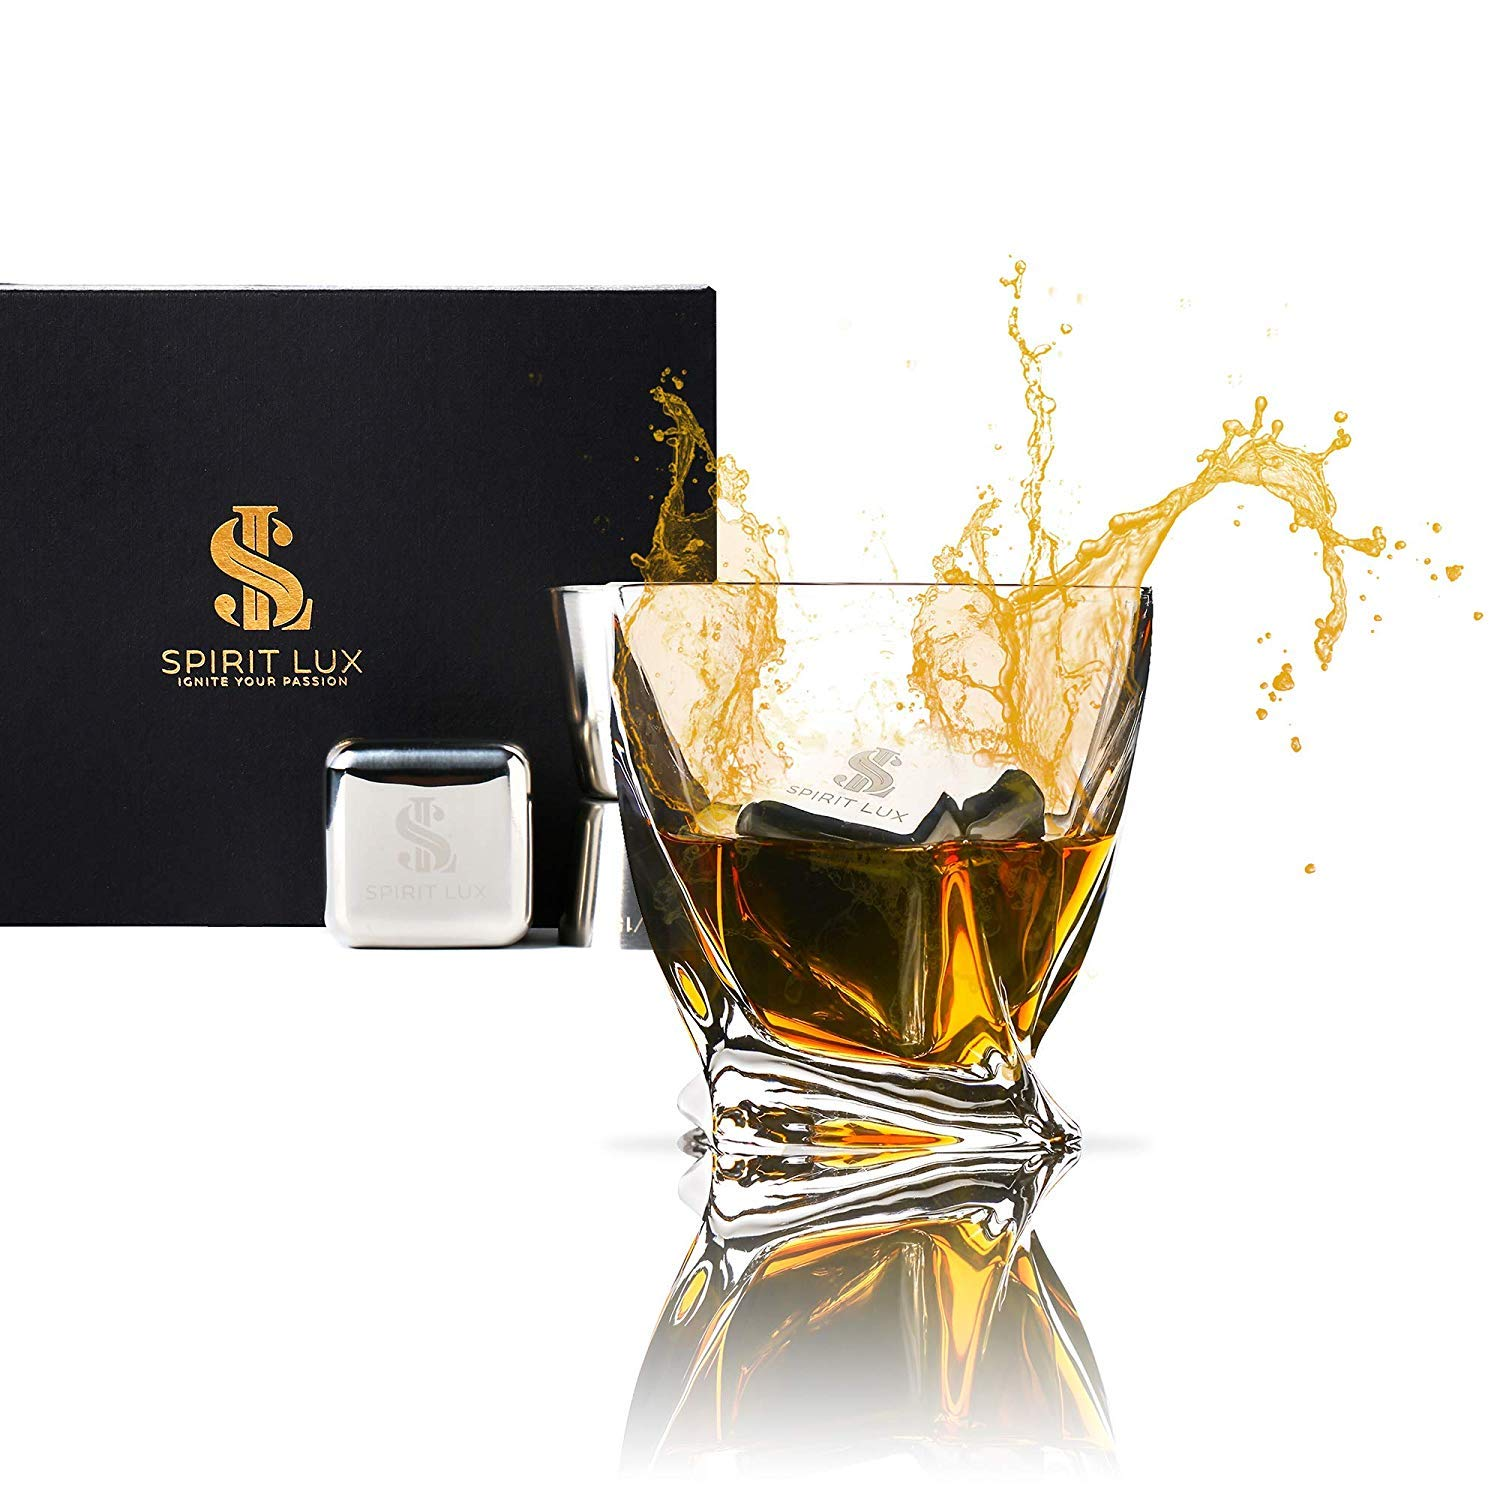 King-Sized Stainless Steel Ice Cubes Whiskey Stones Gift Set of 2, Reusable Metal Ice Cubes for Whiskey, Bourbon,Scotch, Whiskey Rocks Chilling Stones 1.5''+ Cork Coasters absorbent by Spirit Lux